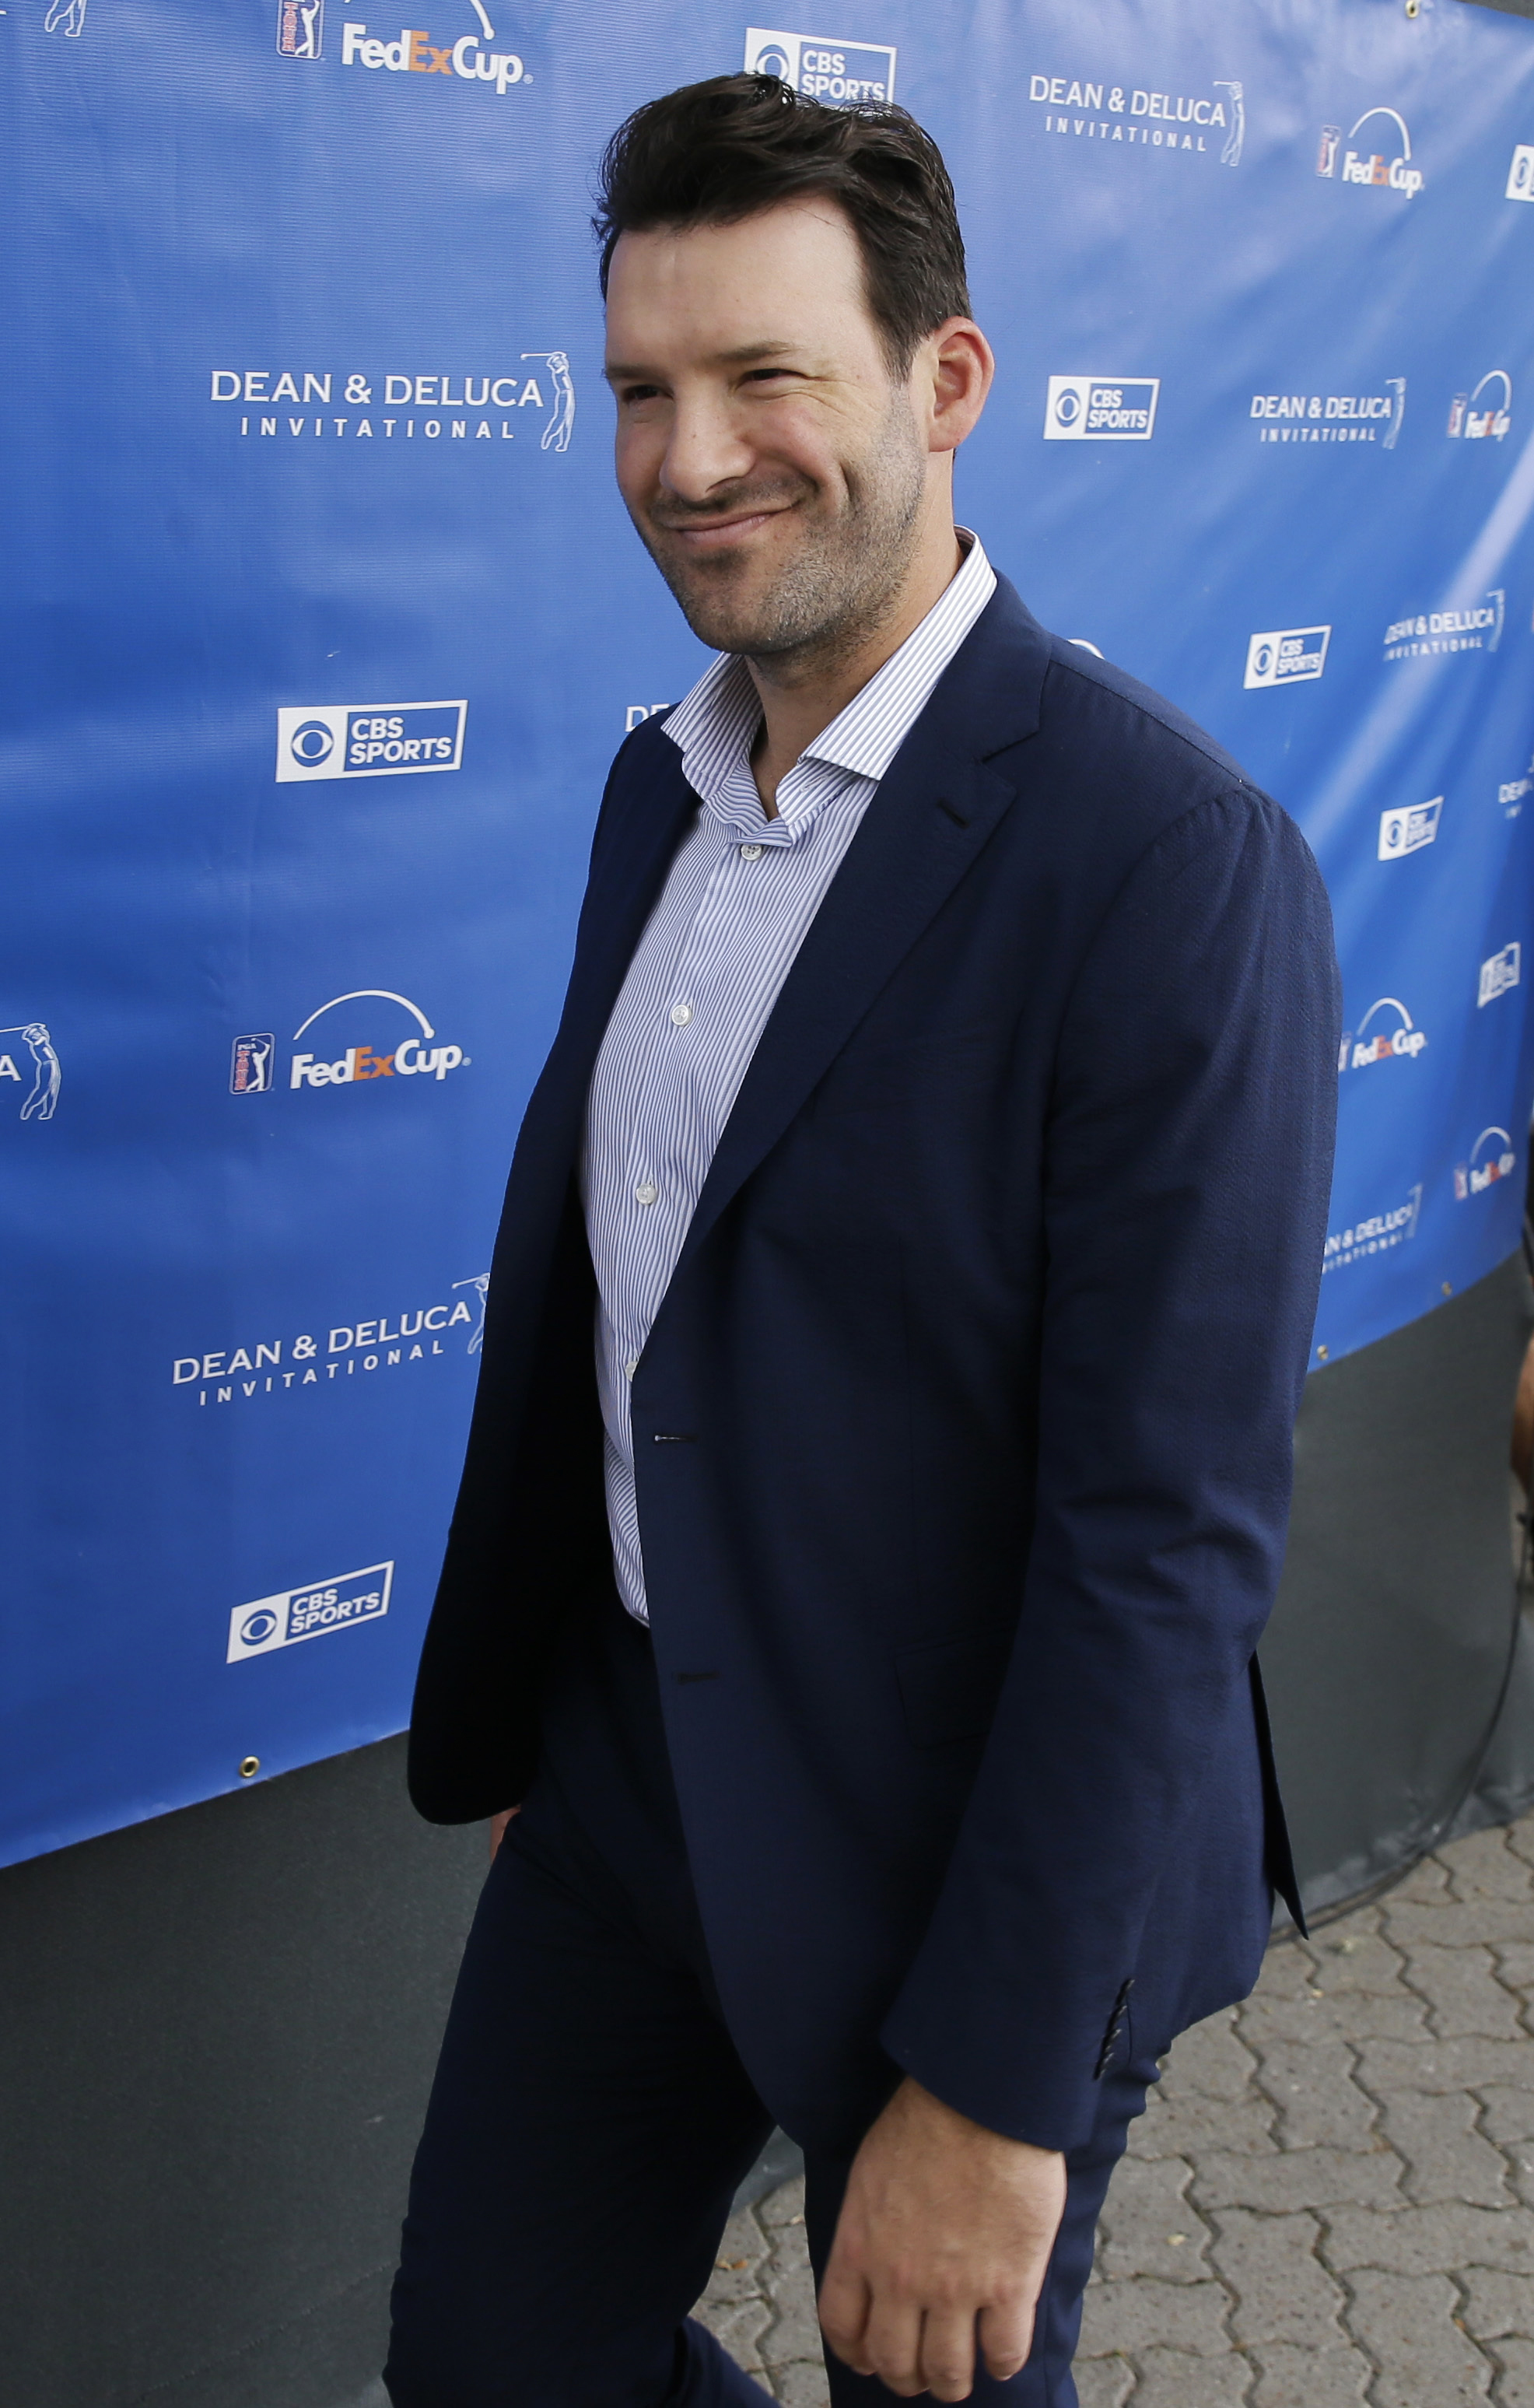 Former NFL quarterback Tony Romo leaves the broadcast booth after appearing on air during the third round of the Dean & DeLuca Invitational golf tournament at Colonial Country Club in Fort Worth, Texas, Saturday, May 27, 2017. The former Dallas Cowboys qu